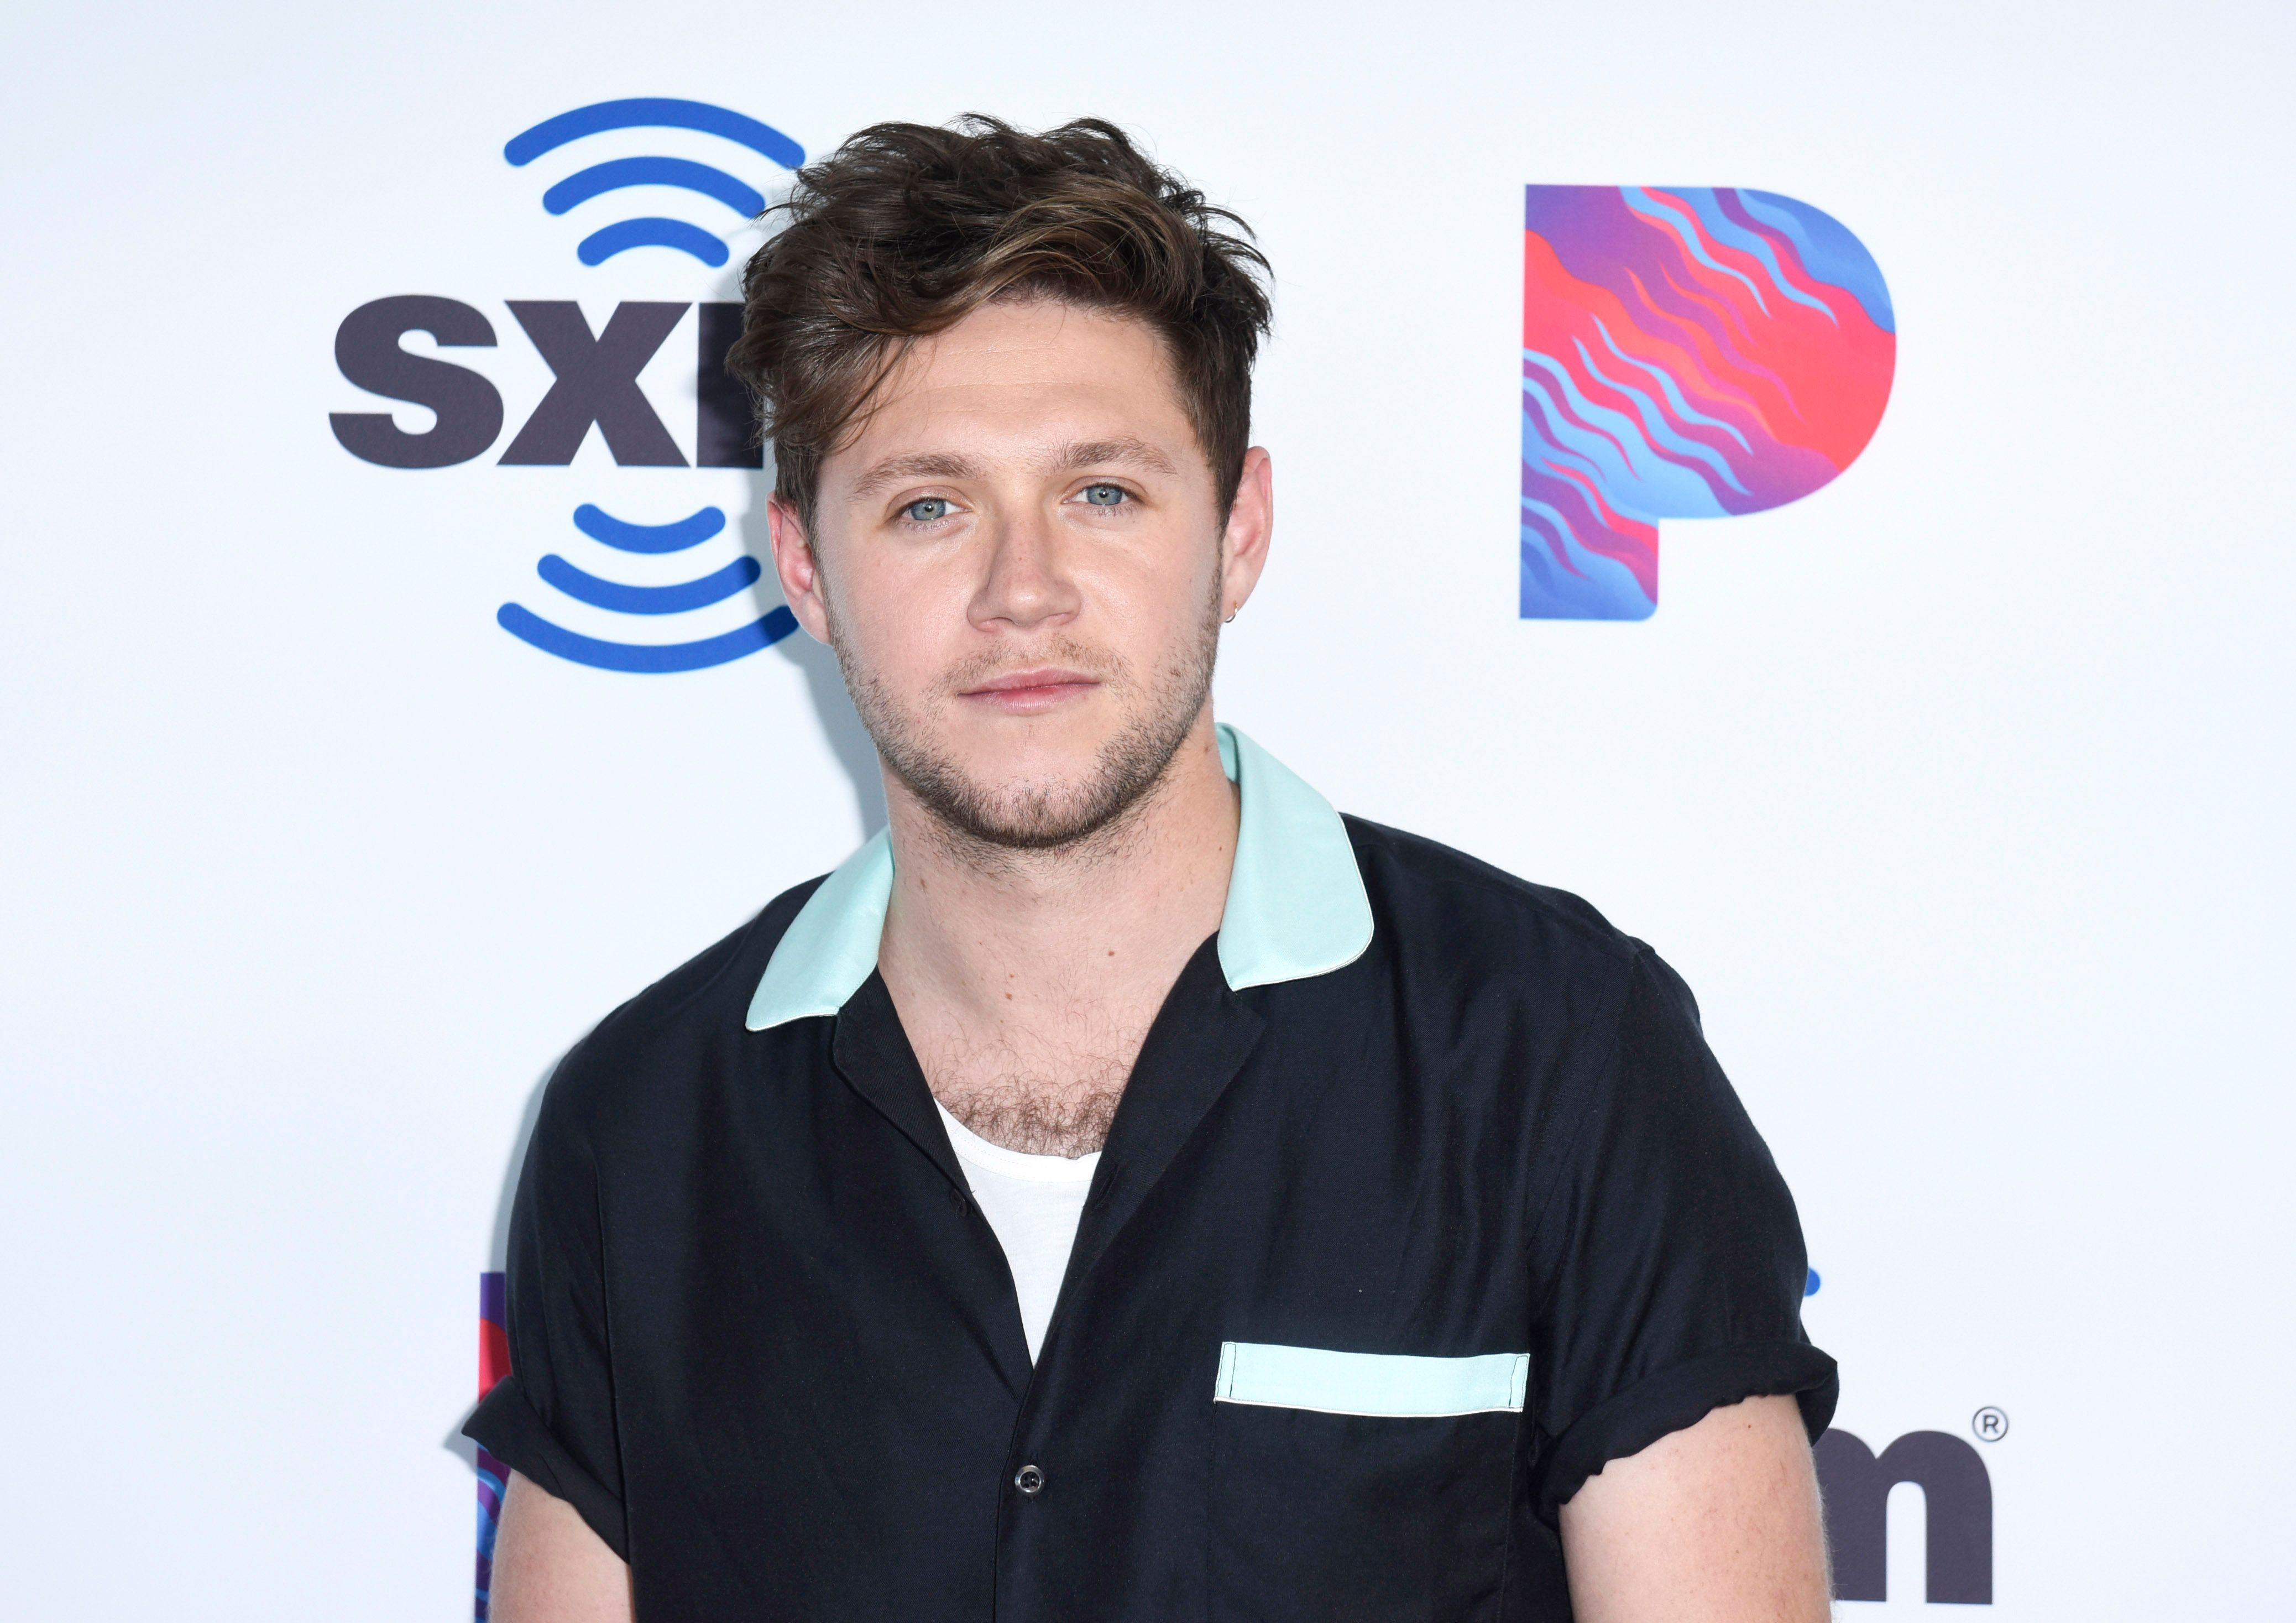 Niall Horan posing at an event.